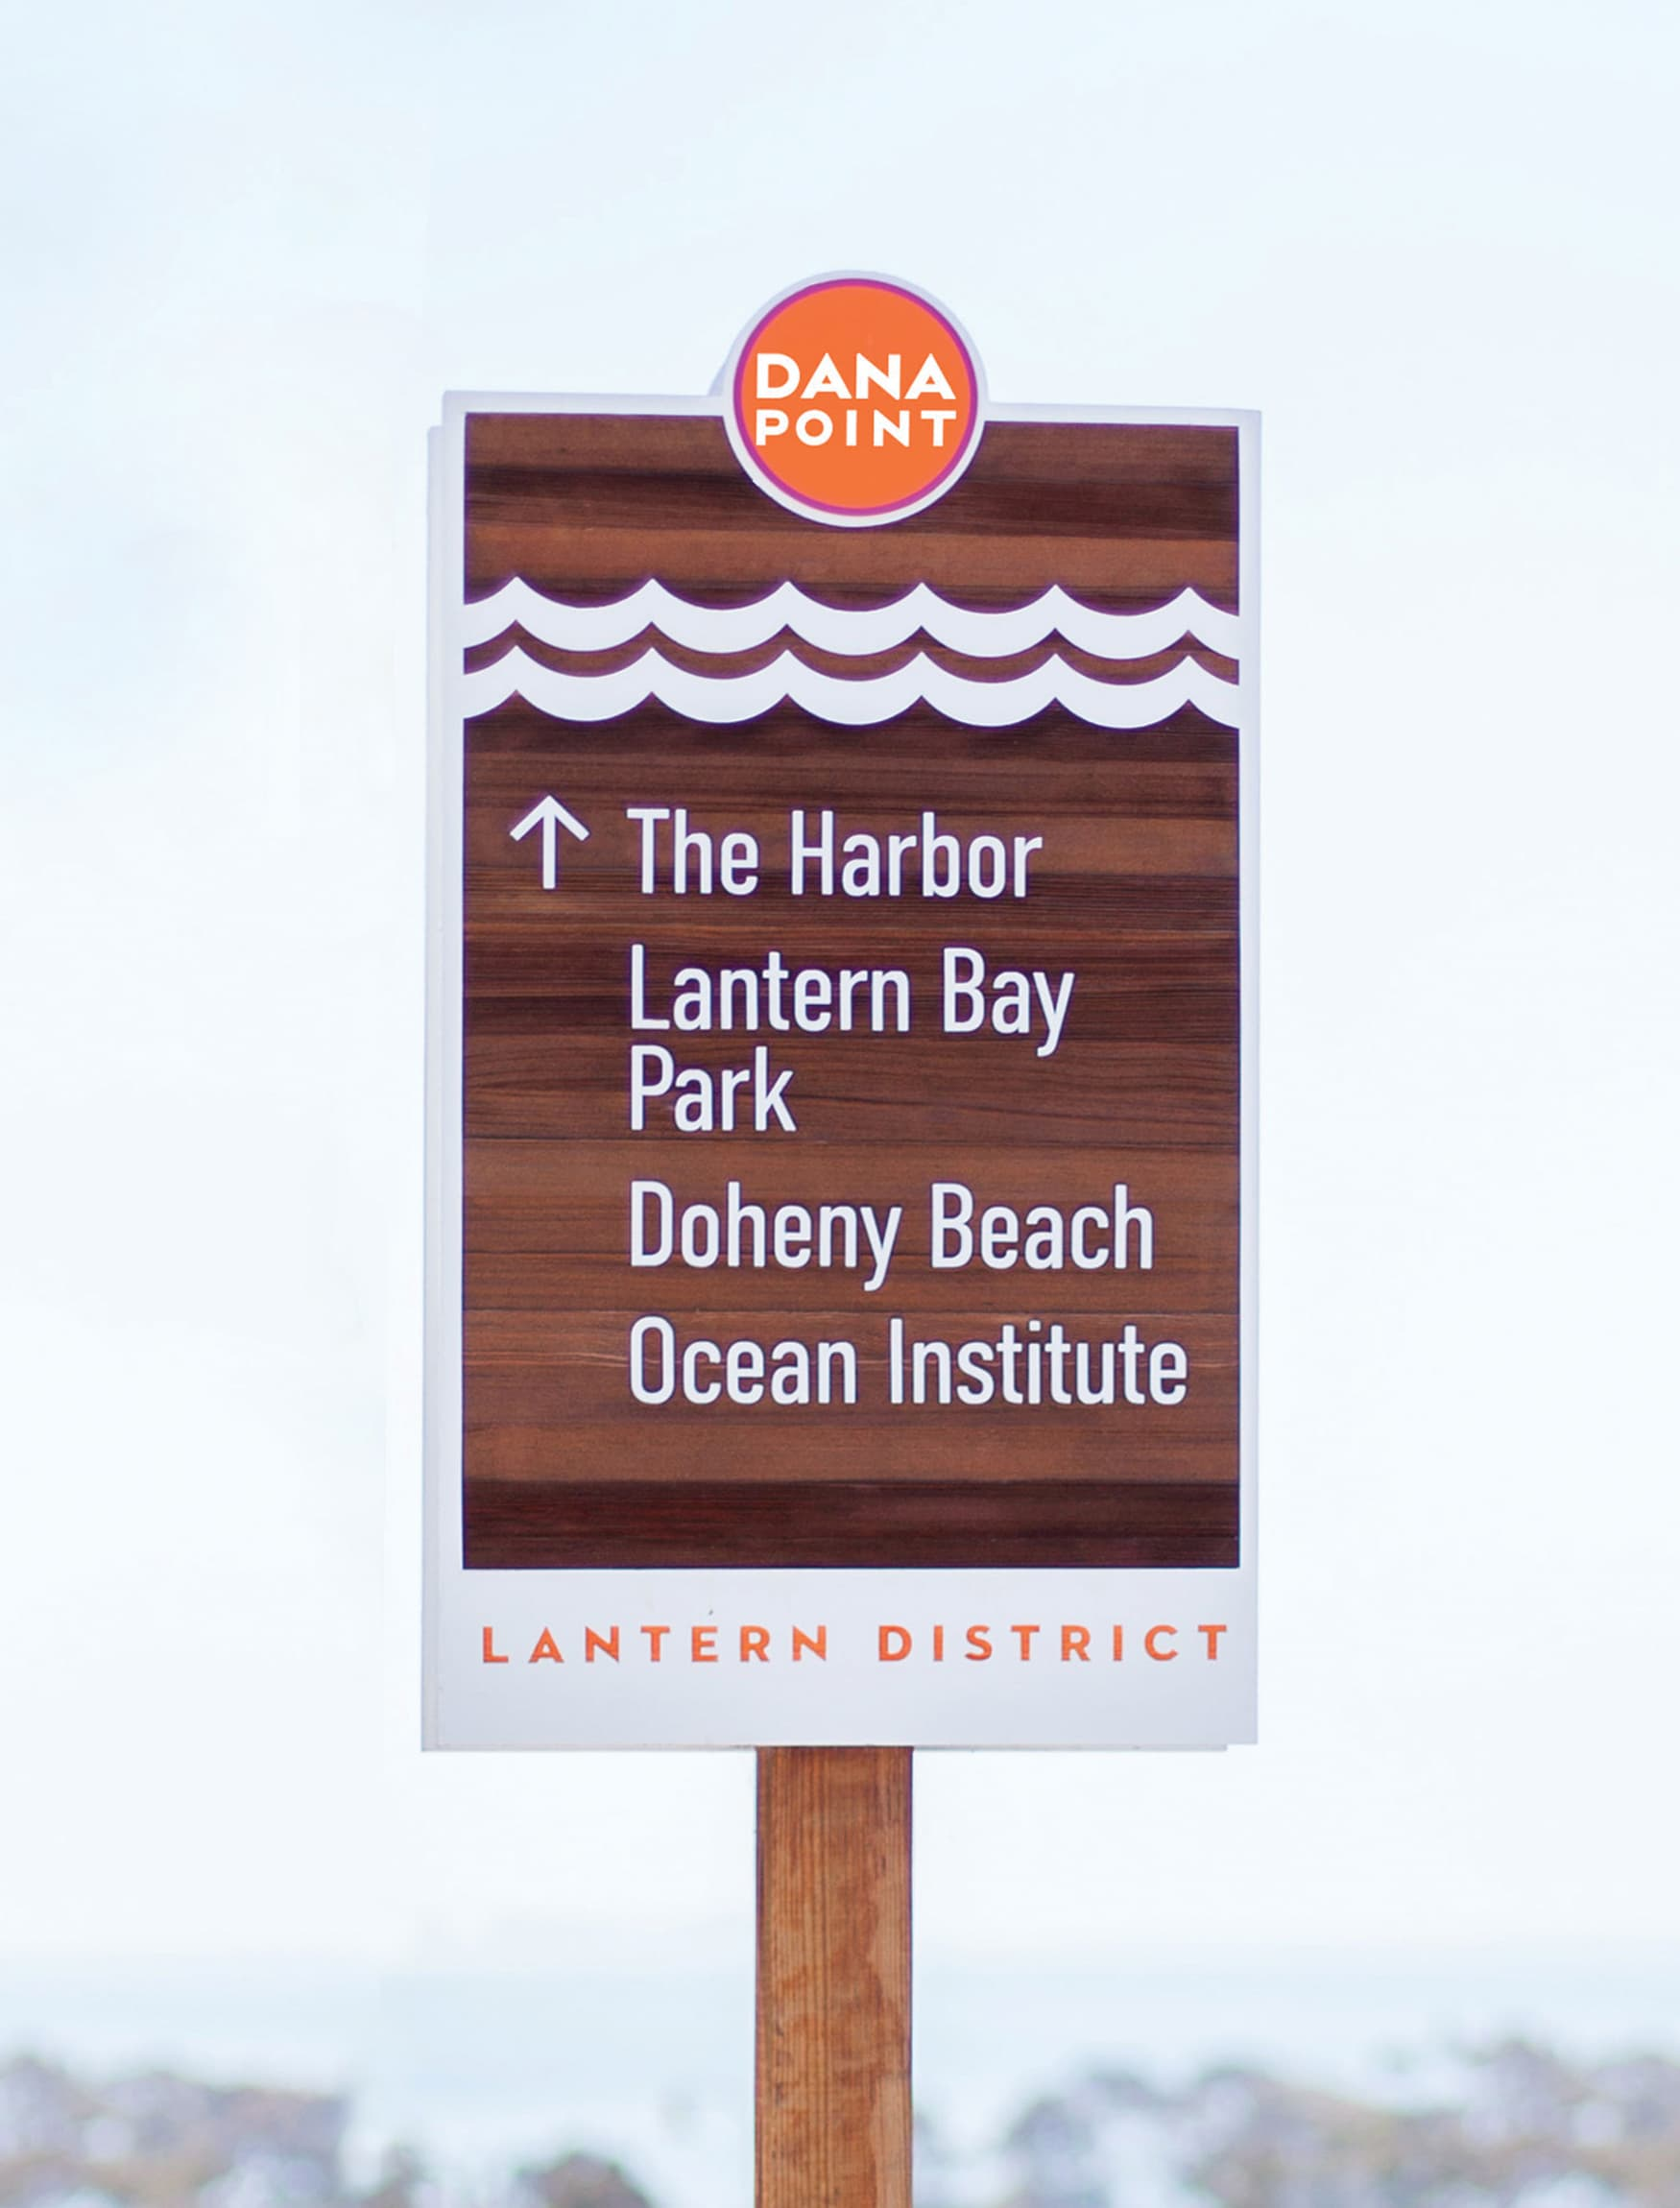 The City of Dana Point branded wayfinding system design